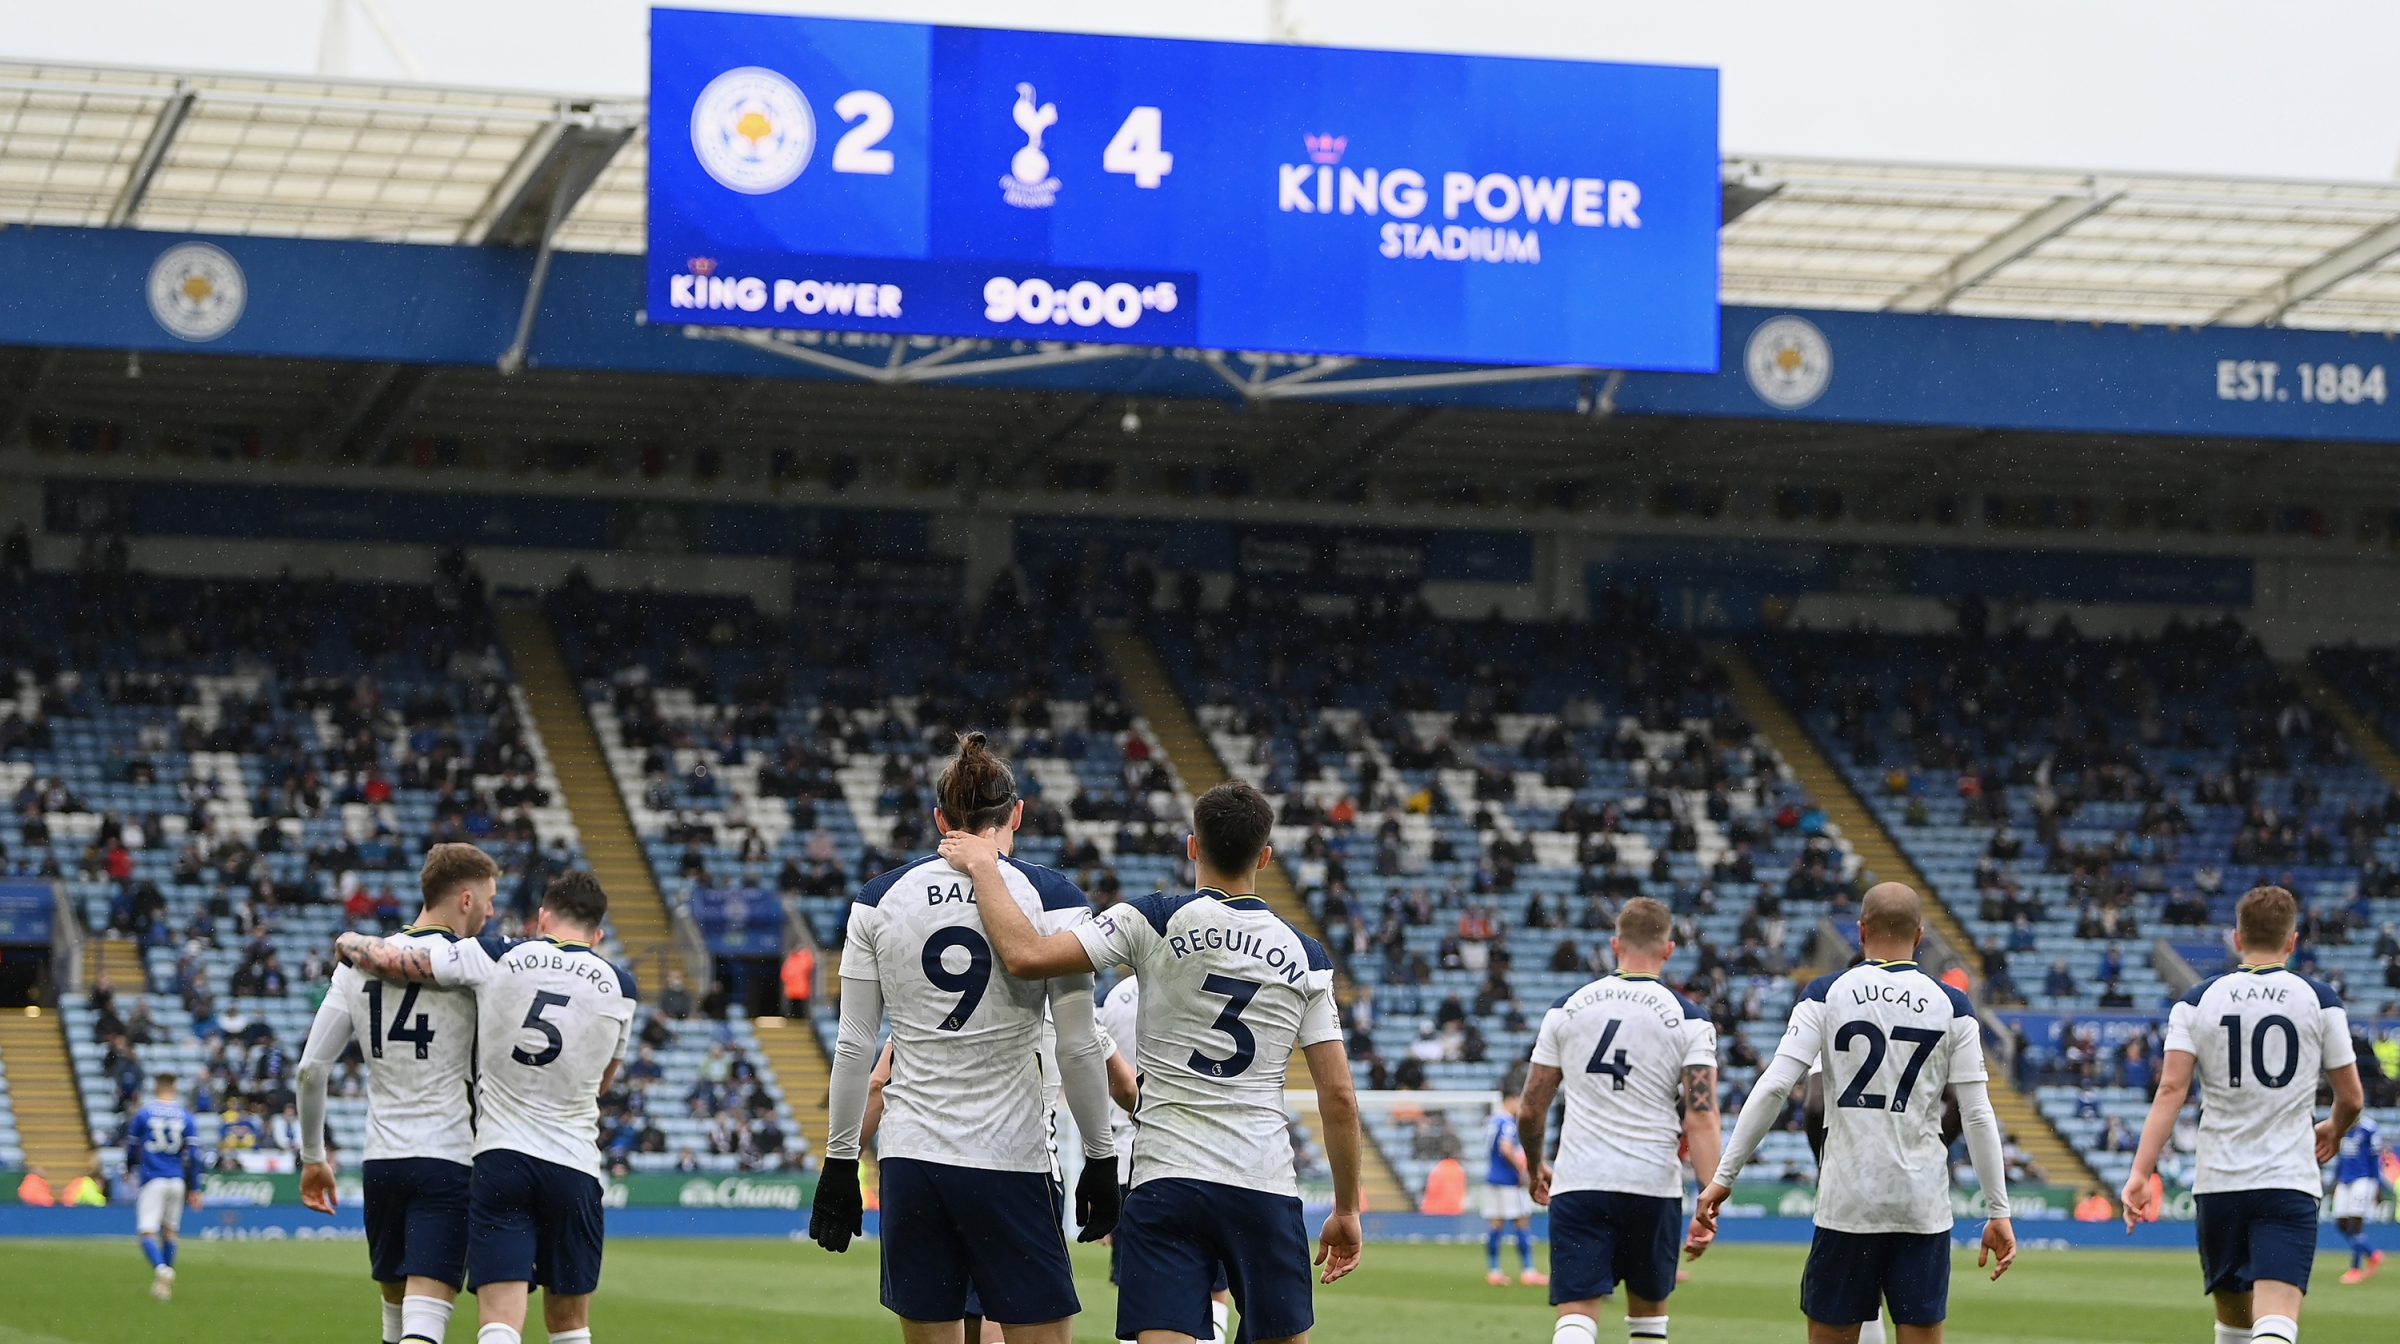 Gareth Bale of Tottenham Hotspur celebrates with teammate Sergio Reguilon after scoring his team's fourth goal during the Premier League match between Leicester City and Tottenham Hotspur at The King Power Stadium on May 23, 2021 in Leicester, England.